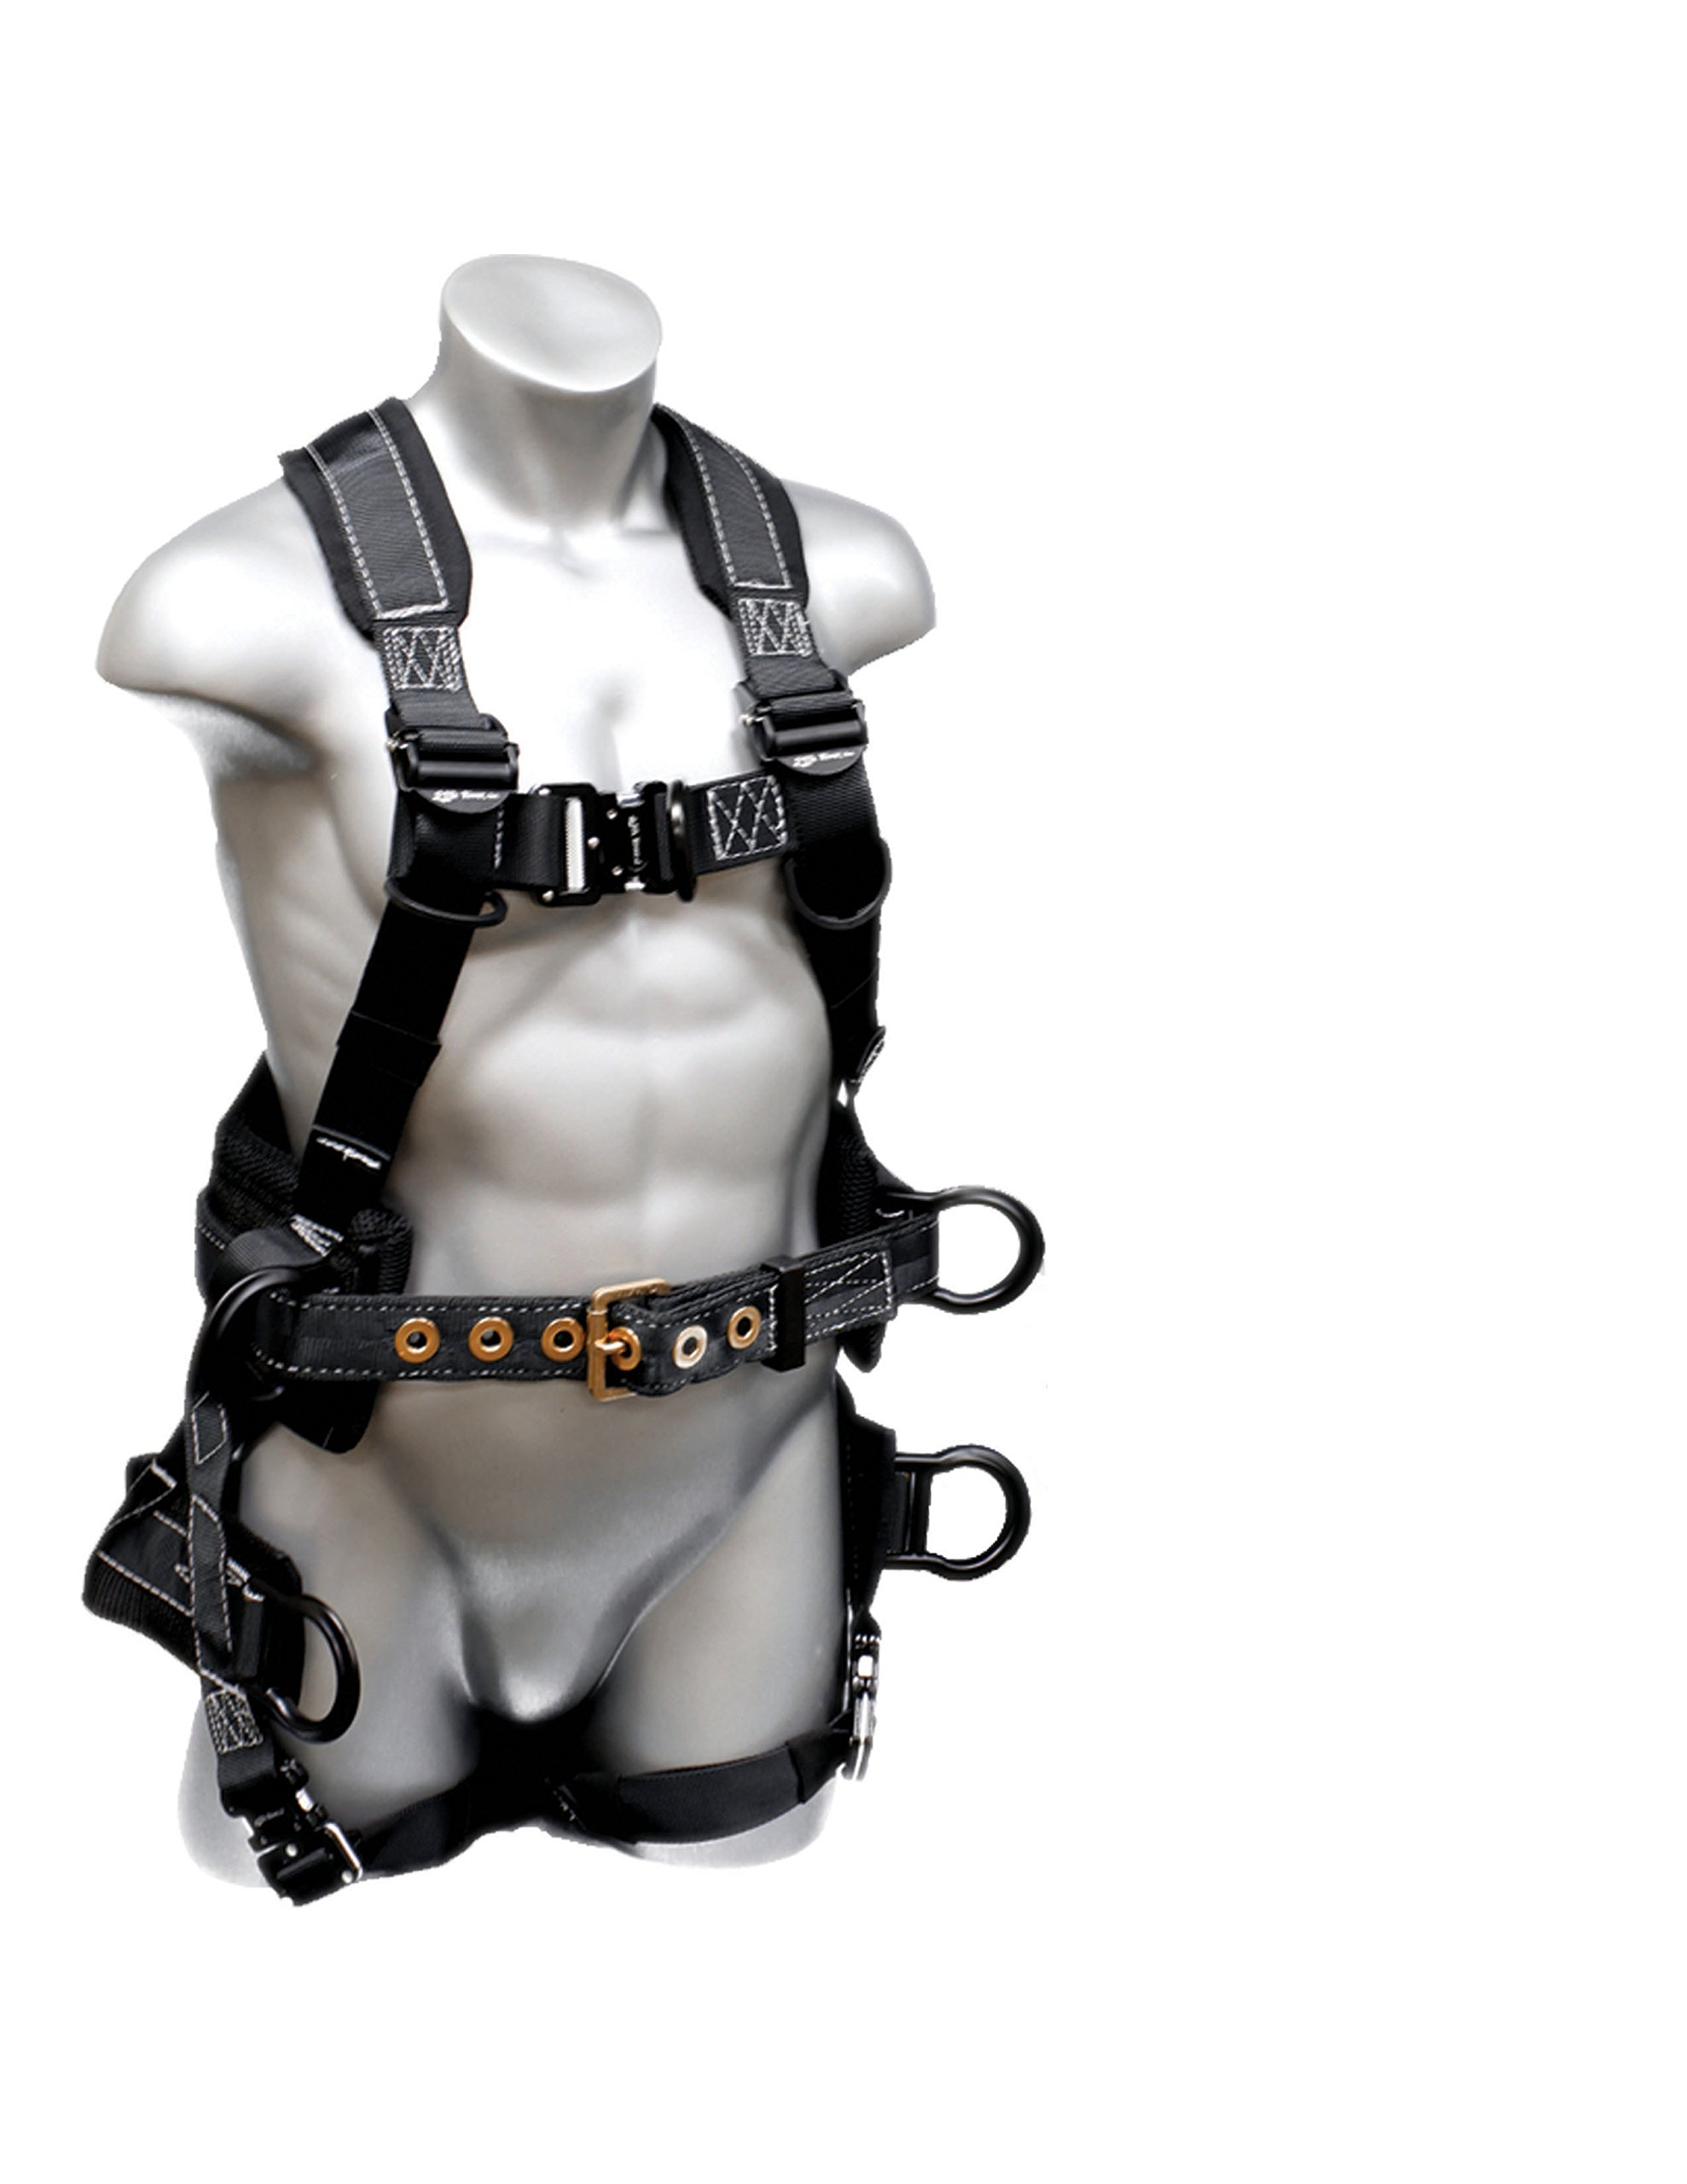 Elk River 67601 Polyester/Nylon Peregrine Platinum Series 6 D-Ring Harness with Quick-Connect Buckles, Small by Elk River (Image #1)